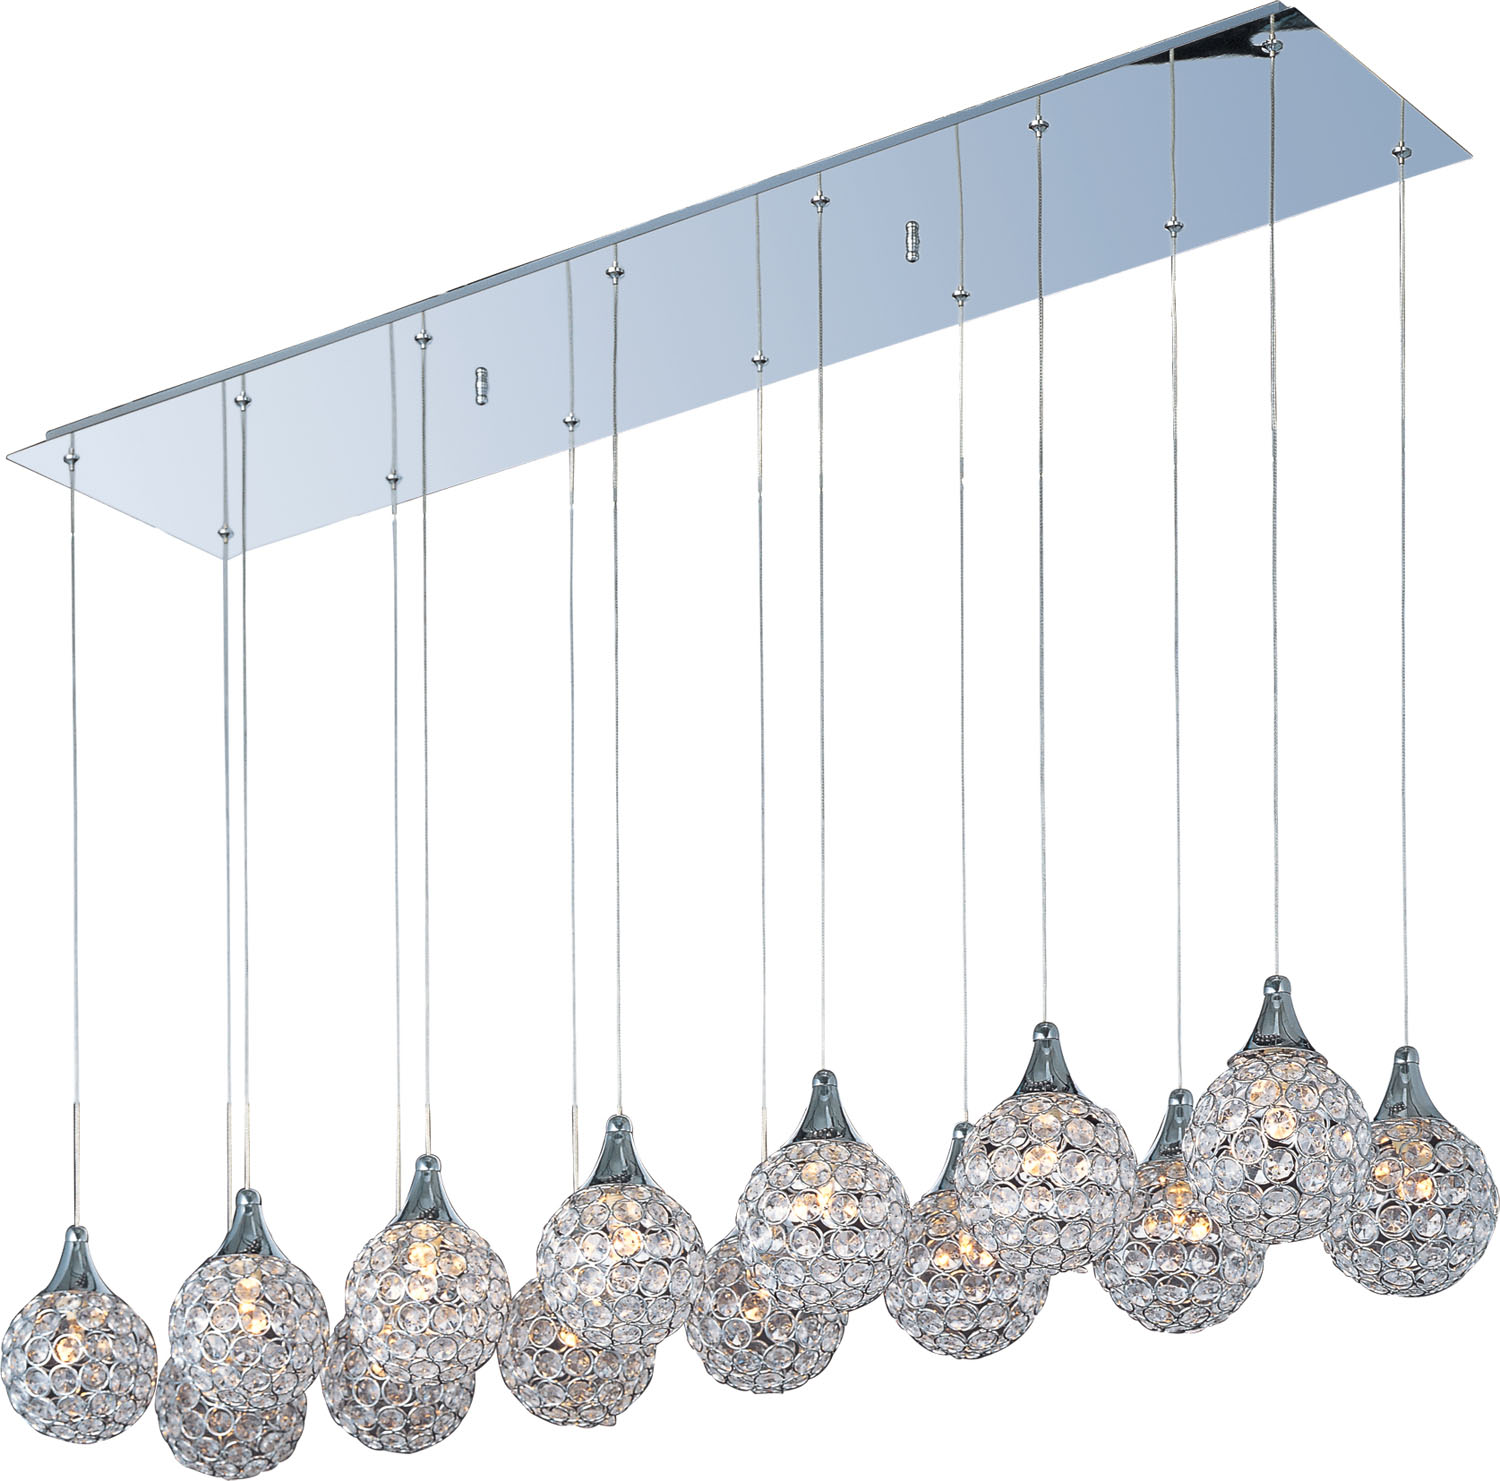 14 Light Pendant from the Brilliant collection by ET2 E24029 20PC